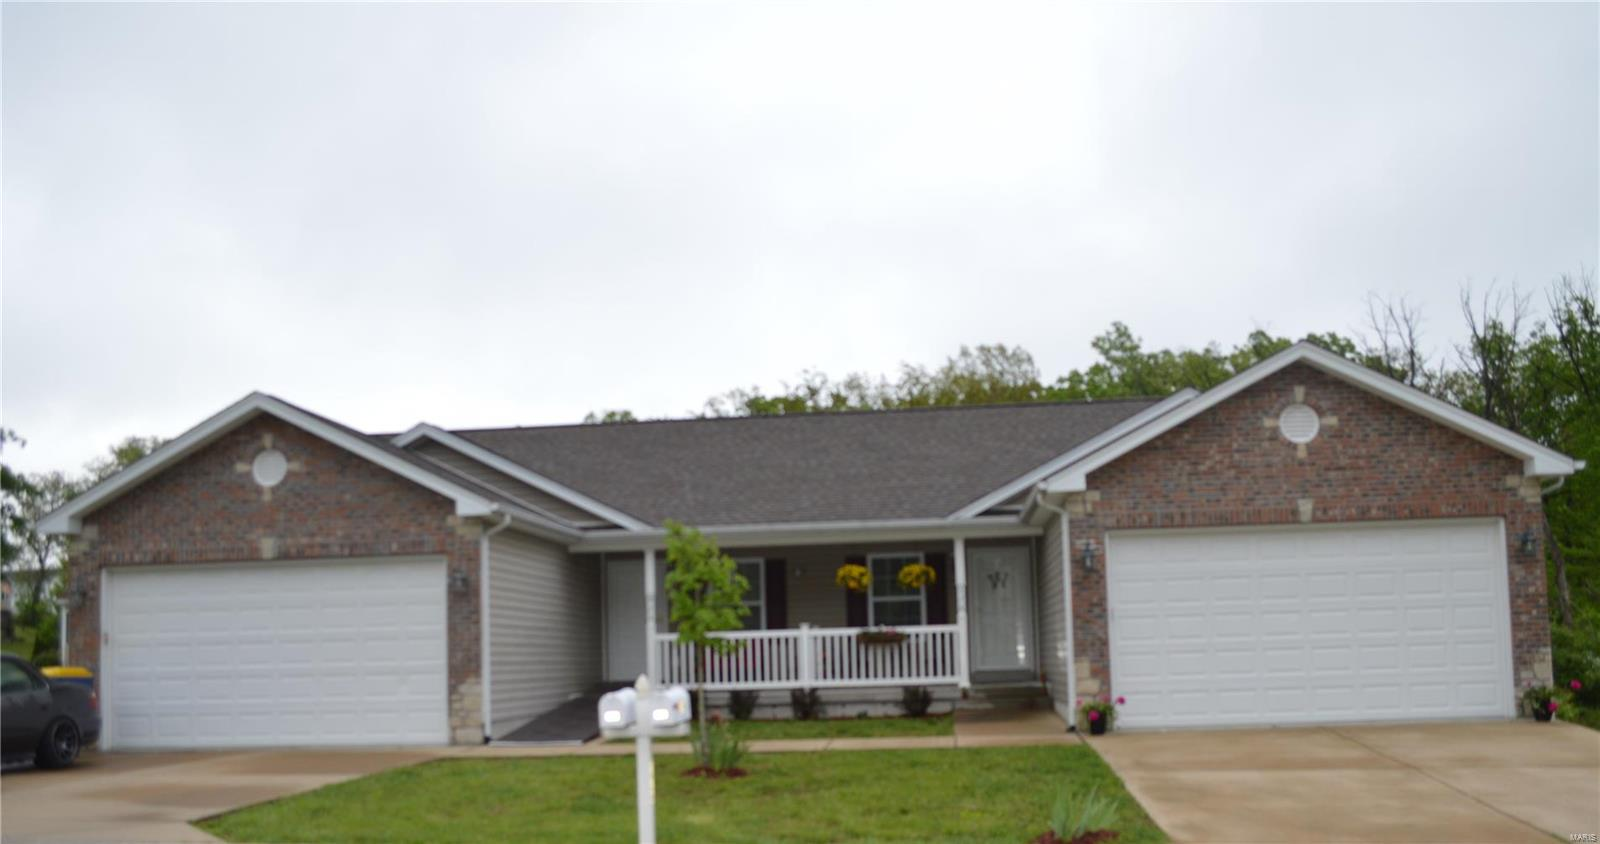 578 Bluebird Blvd Property Photo - St Clair, MO real estate listing